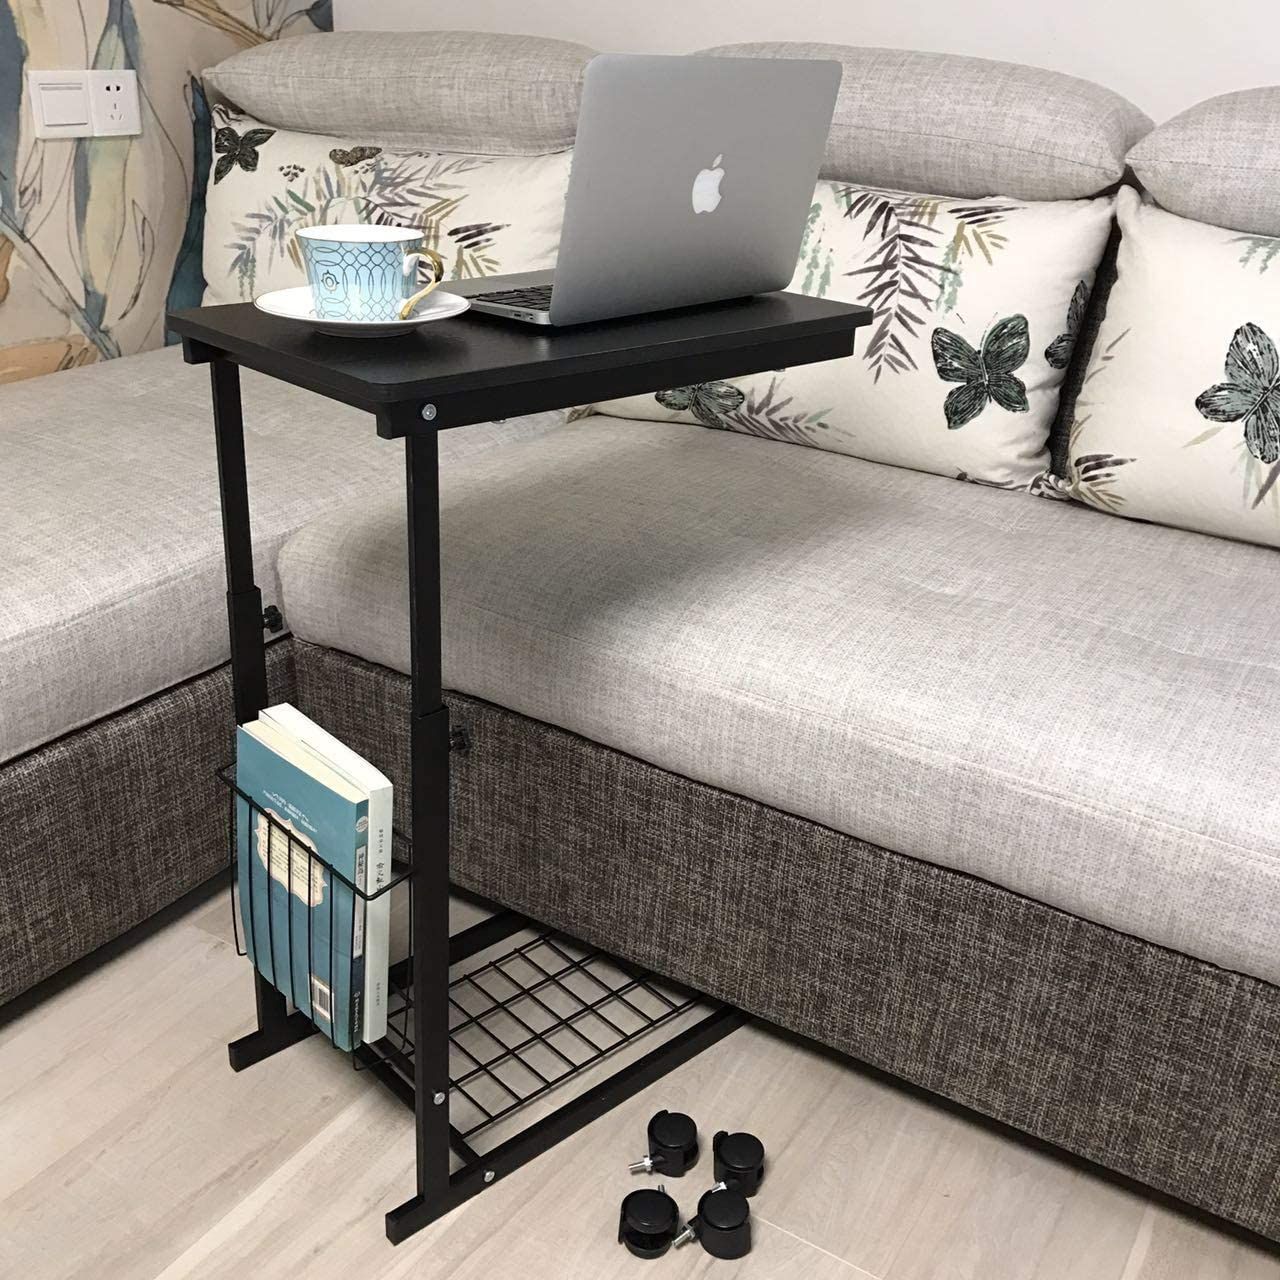 micoe Sofa Side Table with Wheels Couch Table That Slide Under with Storage Shelves C Style Height Adjustable for Home Room Office Black